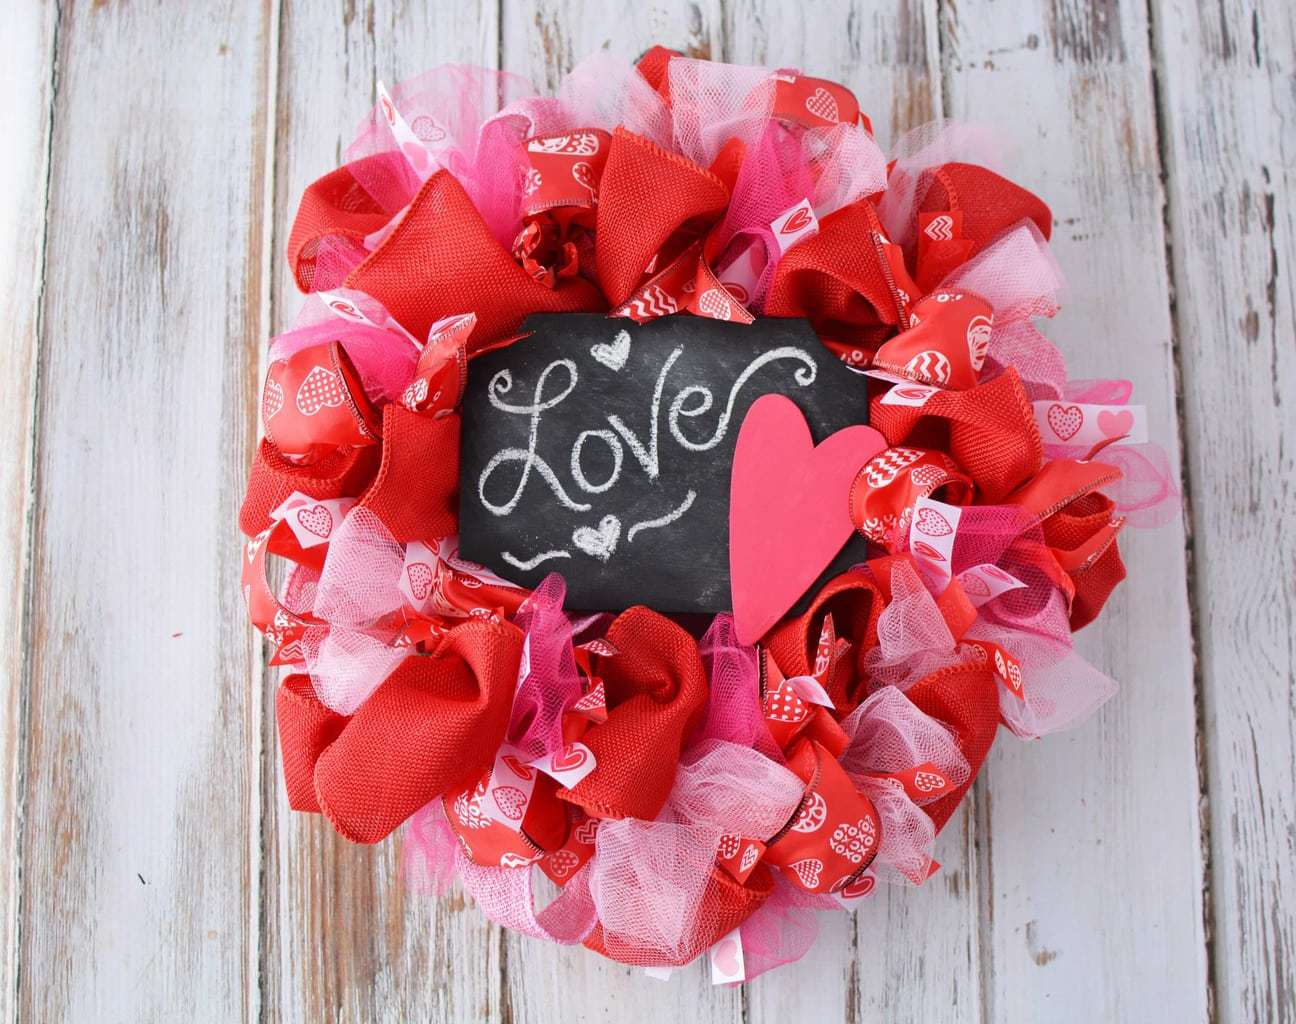 DIY Valentine's Day Mesh Wreath – Homemade Door Decorations